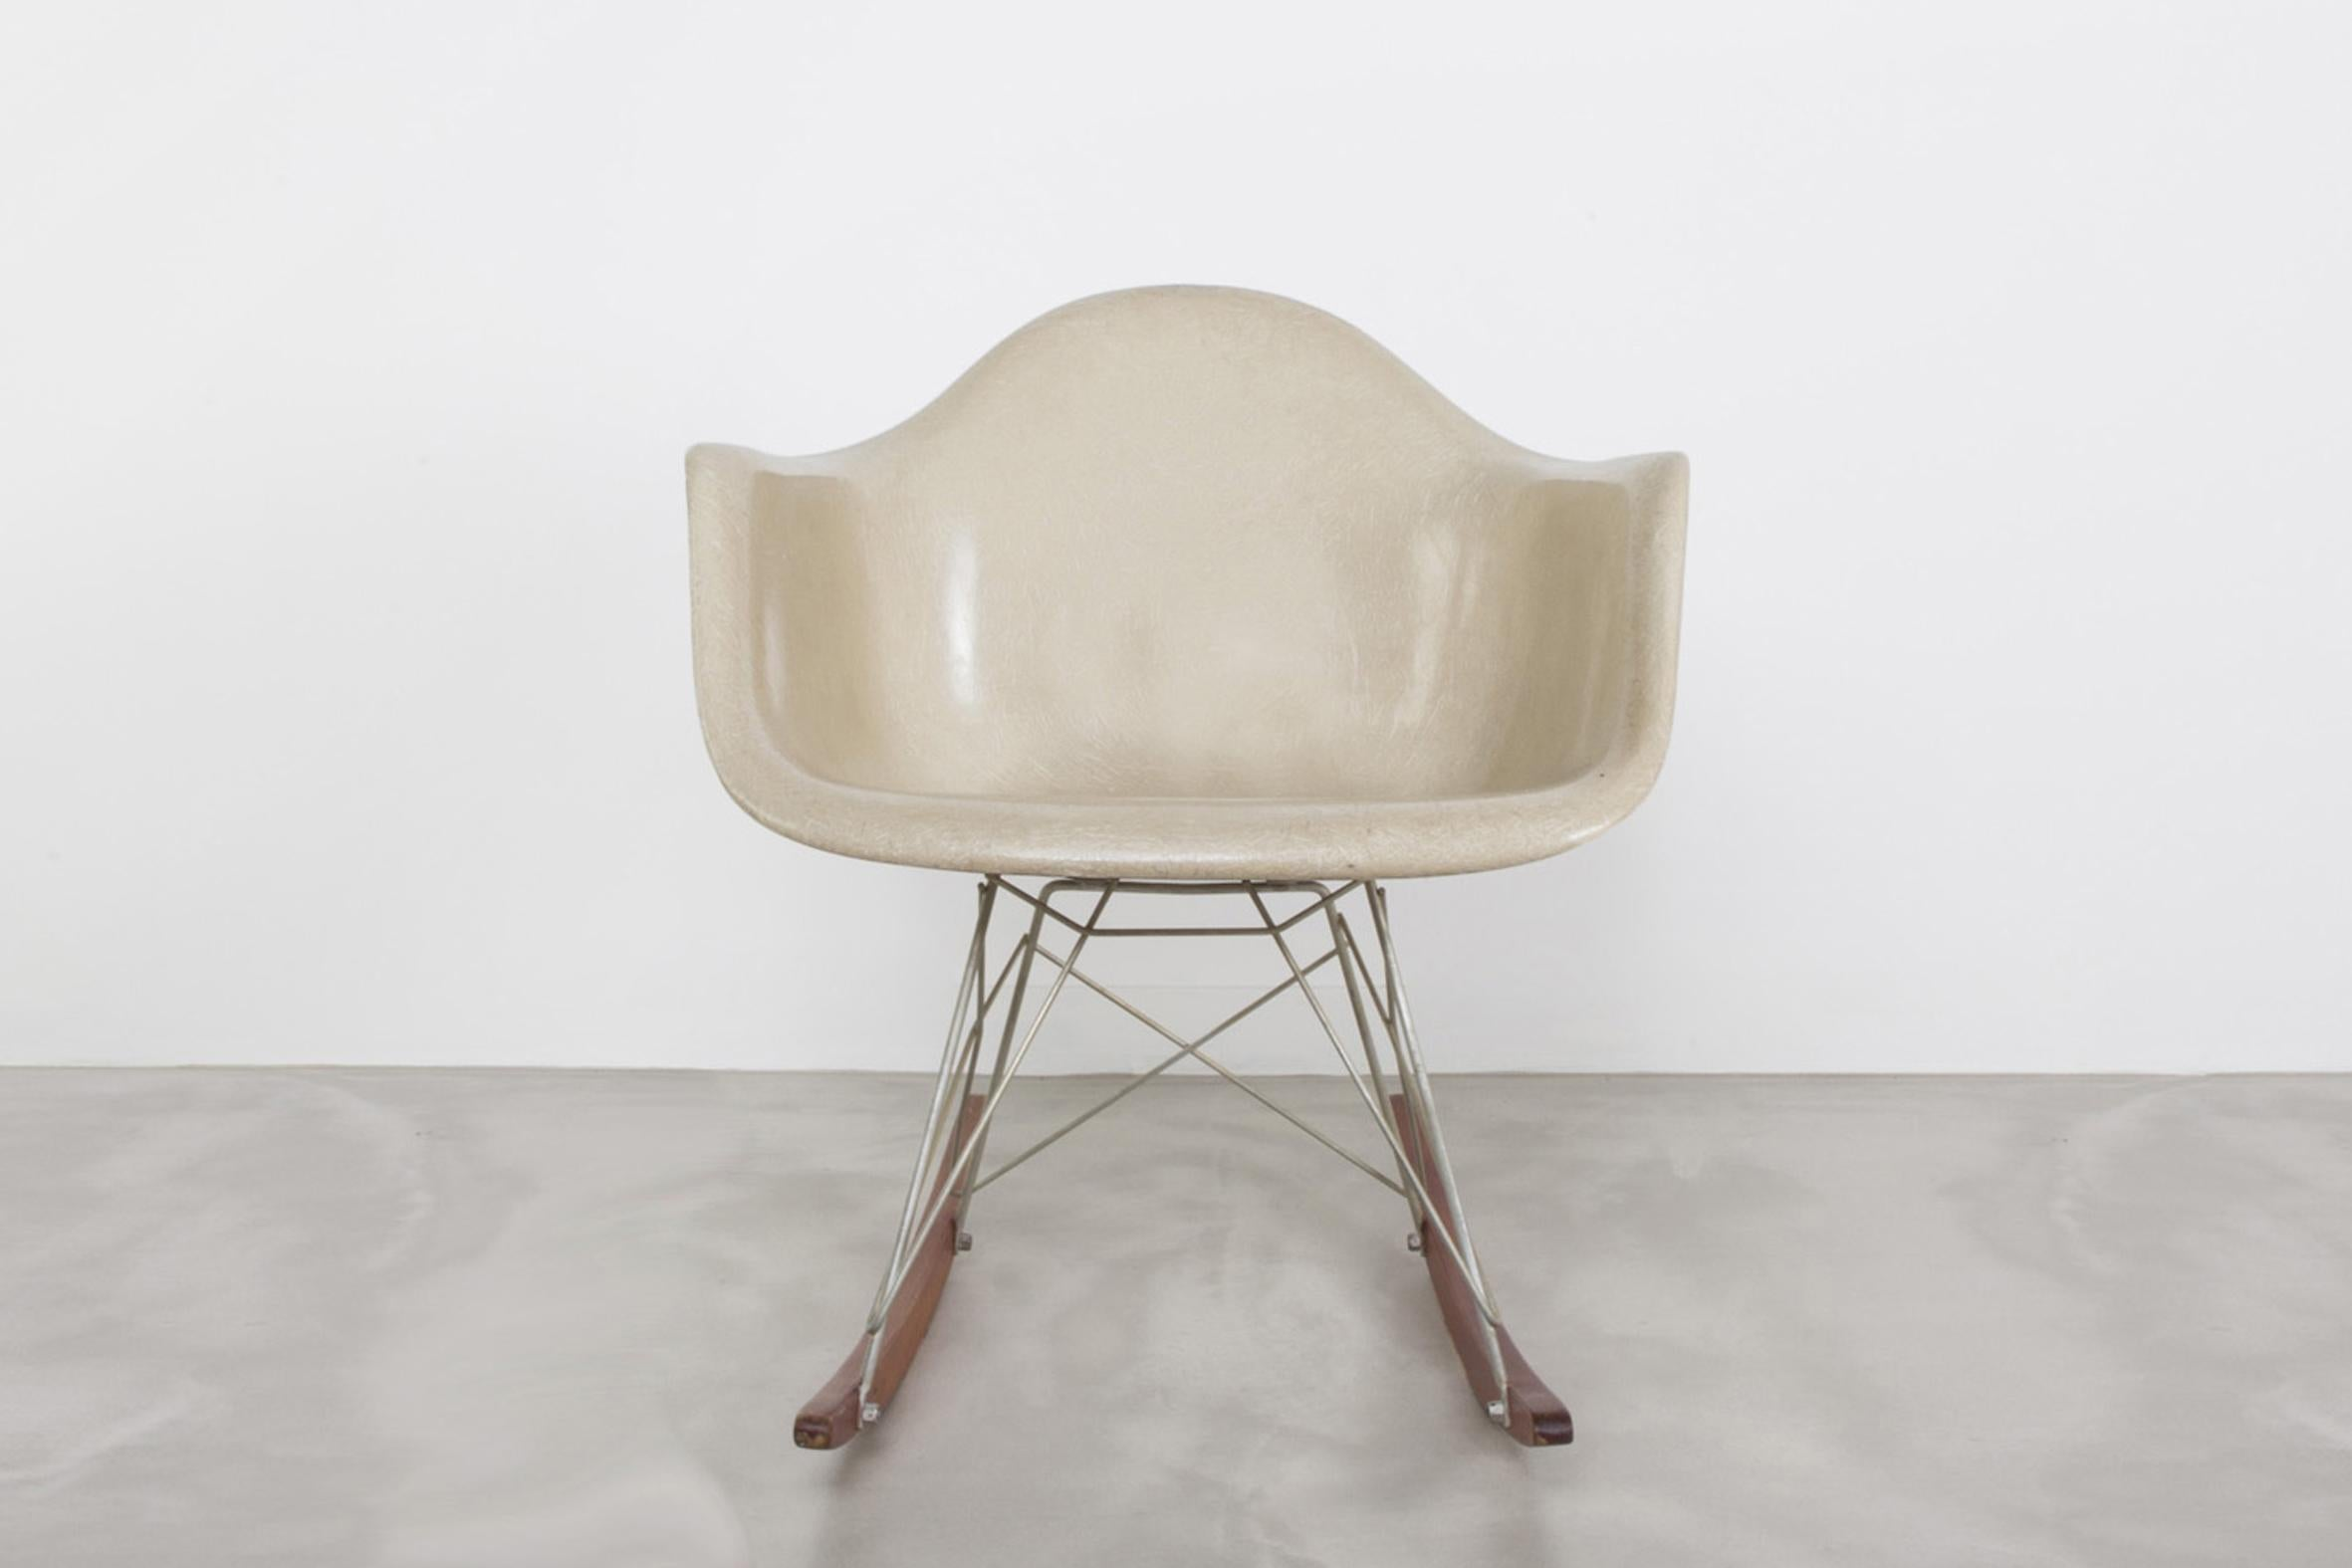 Eames Rocking Chair : Charles and ray eames rar rocking chair s for sale at stdibs